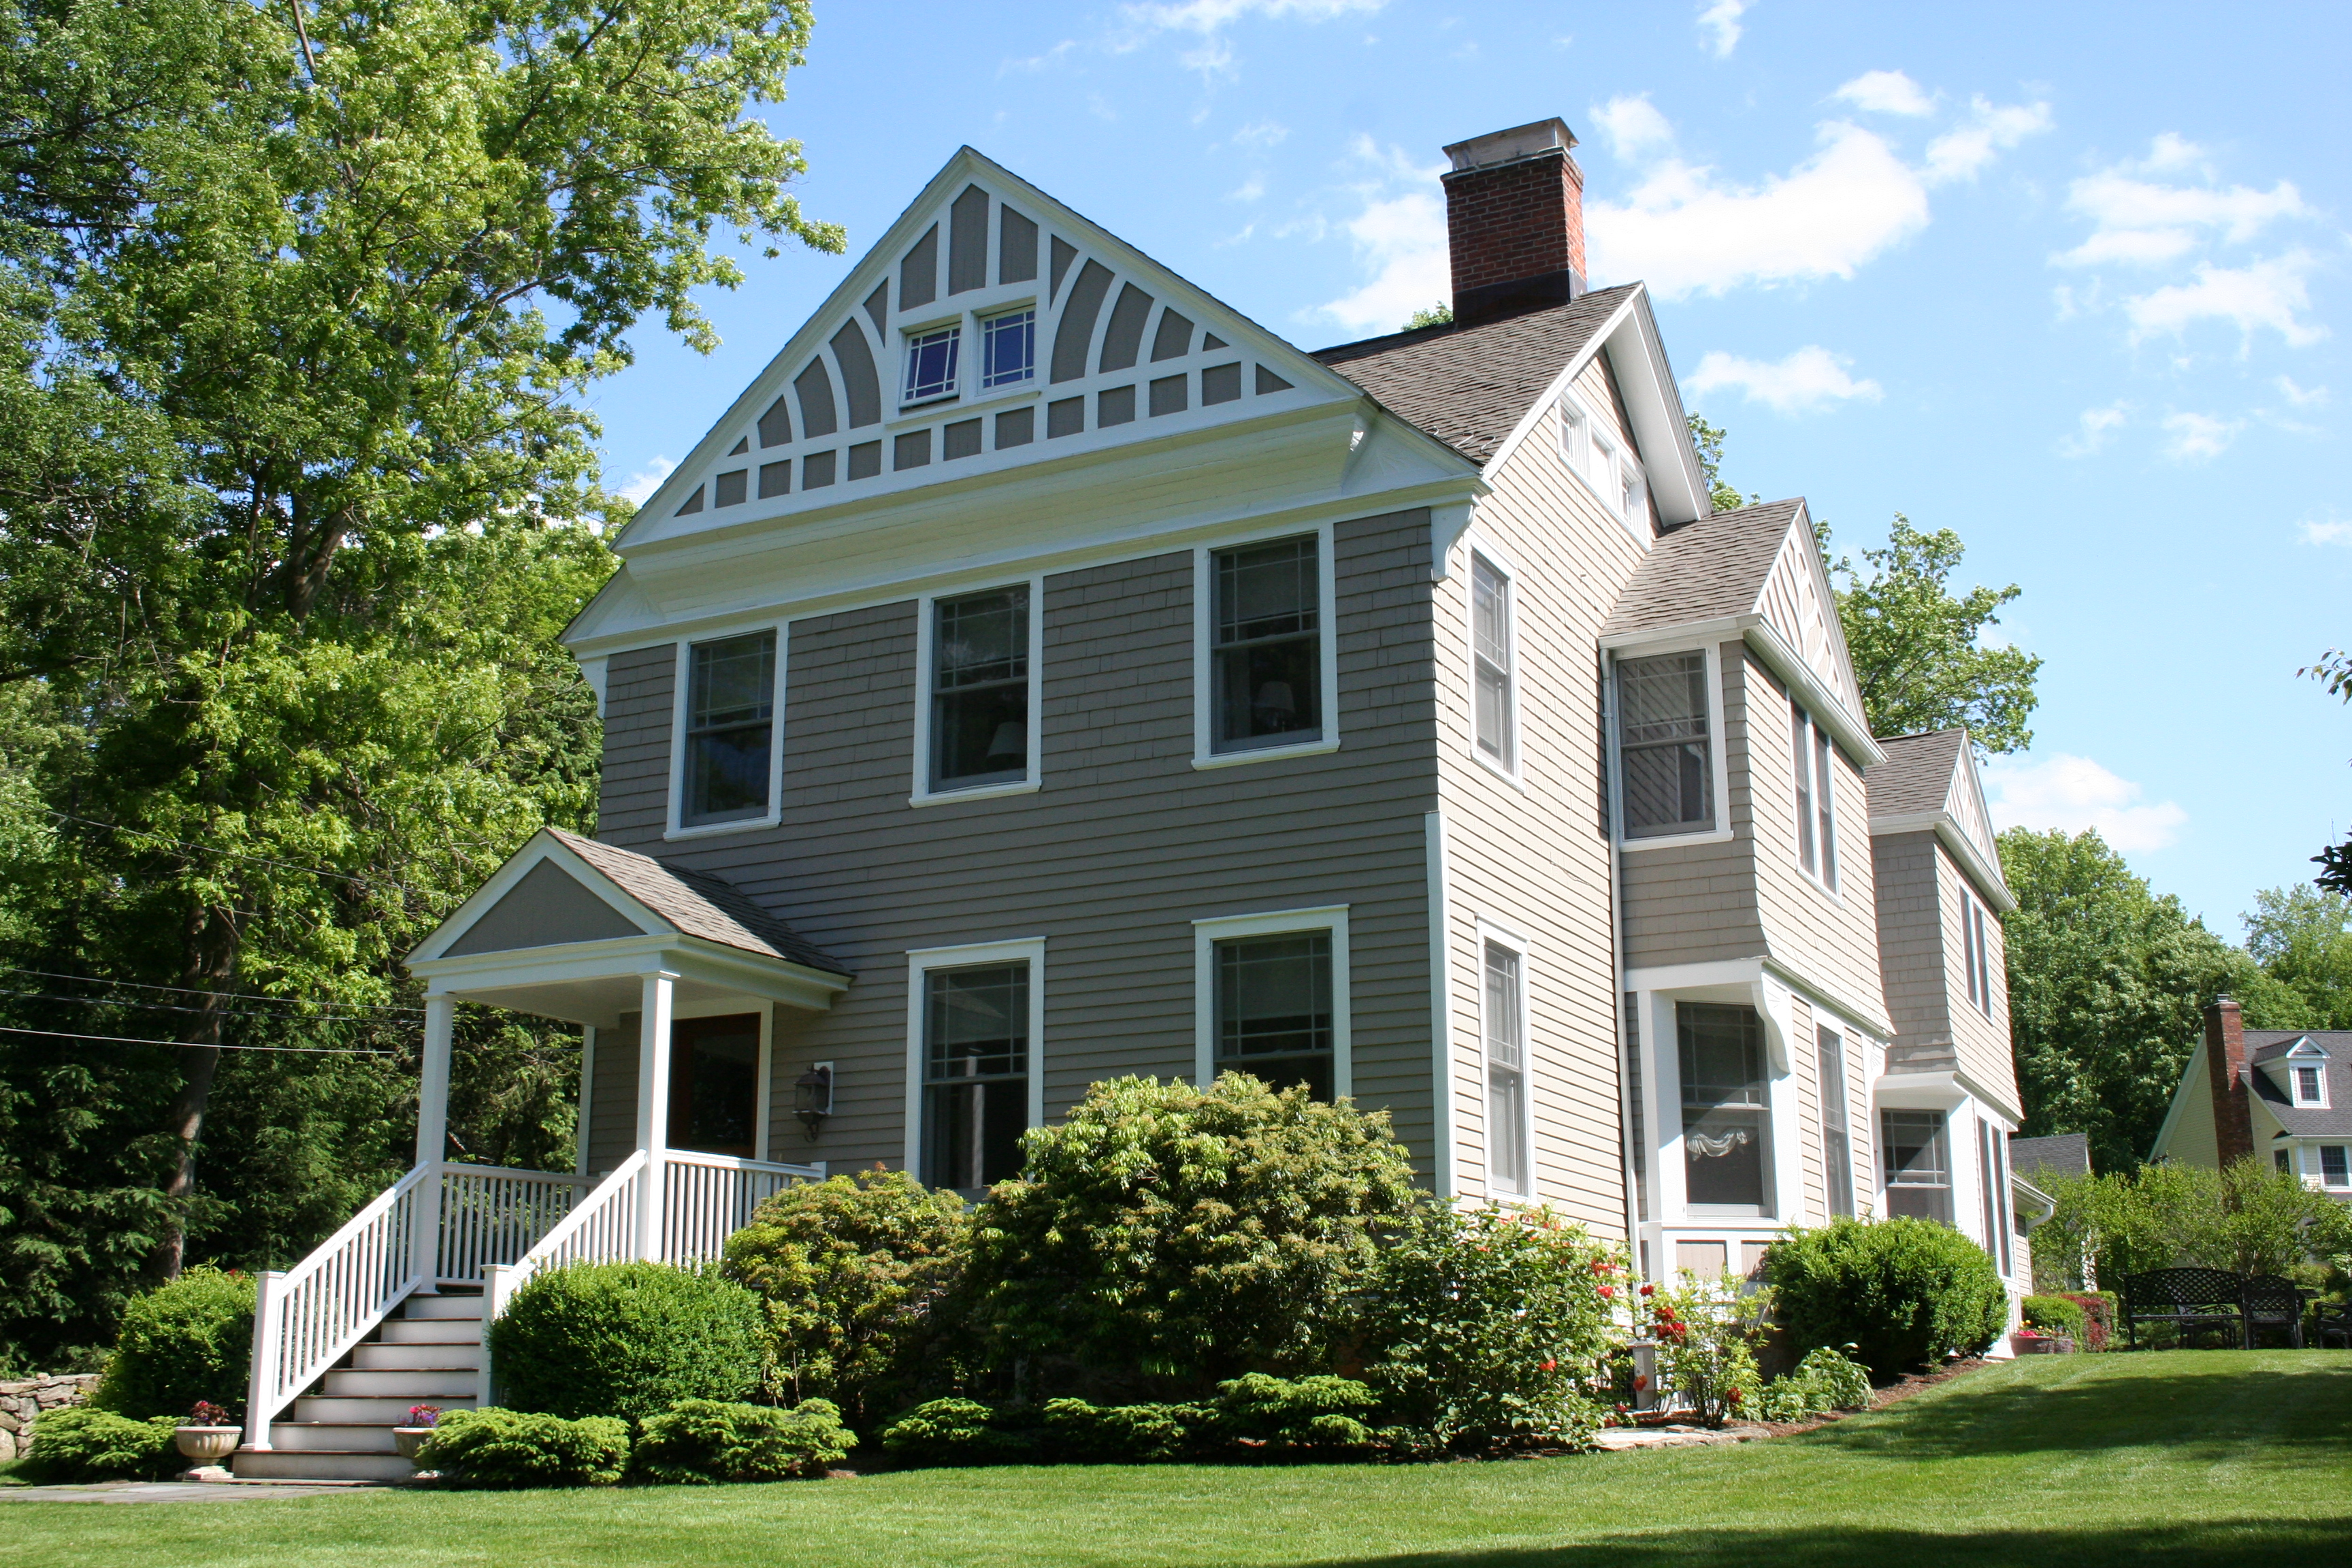 Single Family Home for Sale at Completely Renovated Colonial Antique 57 Barry Avenue Ridgefield, Connecticut 06877 United States